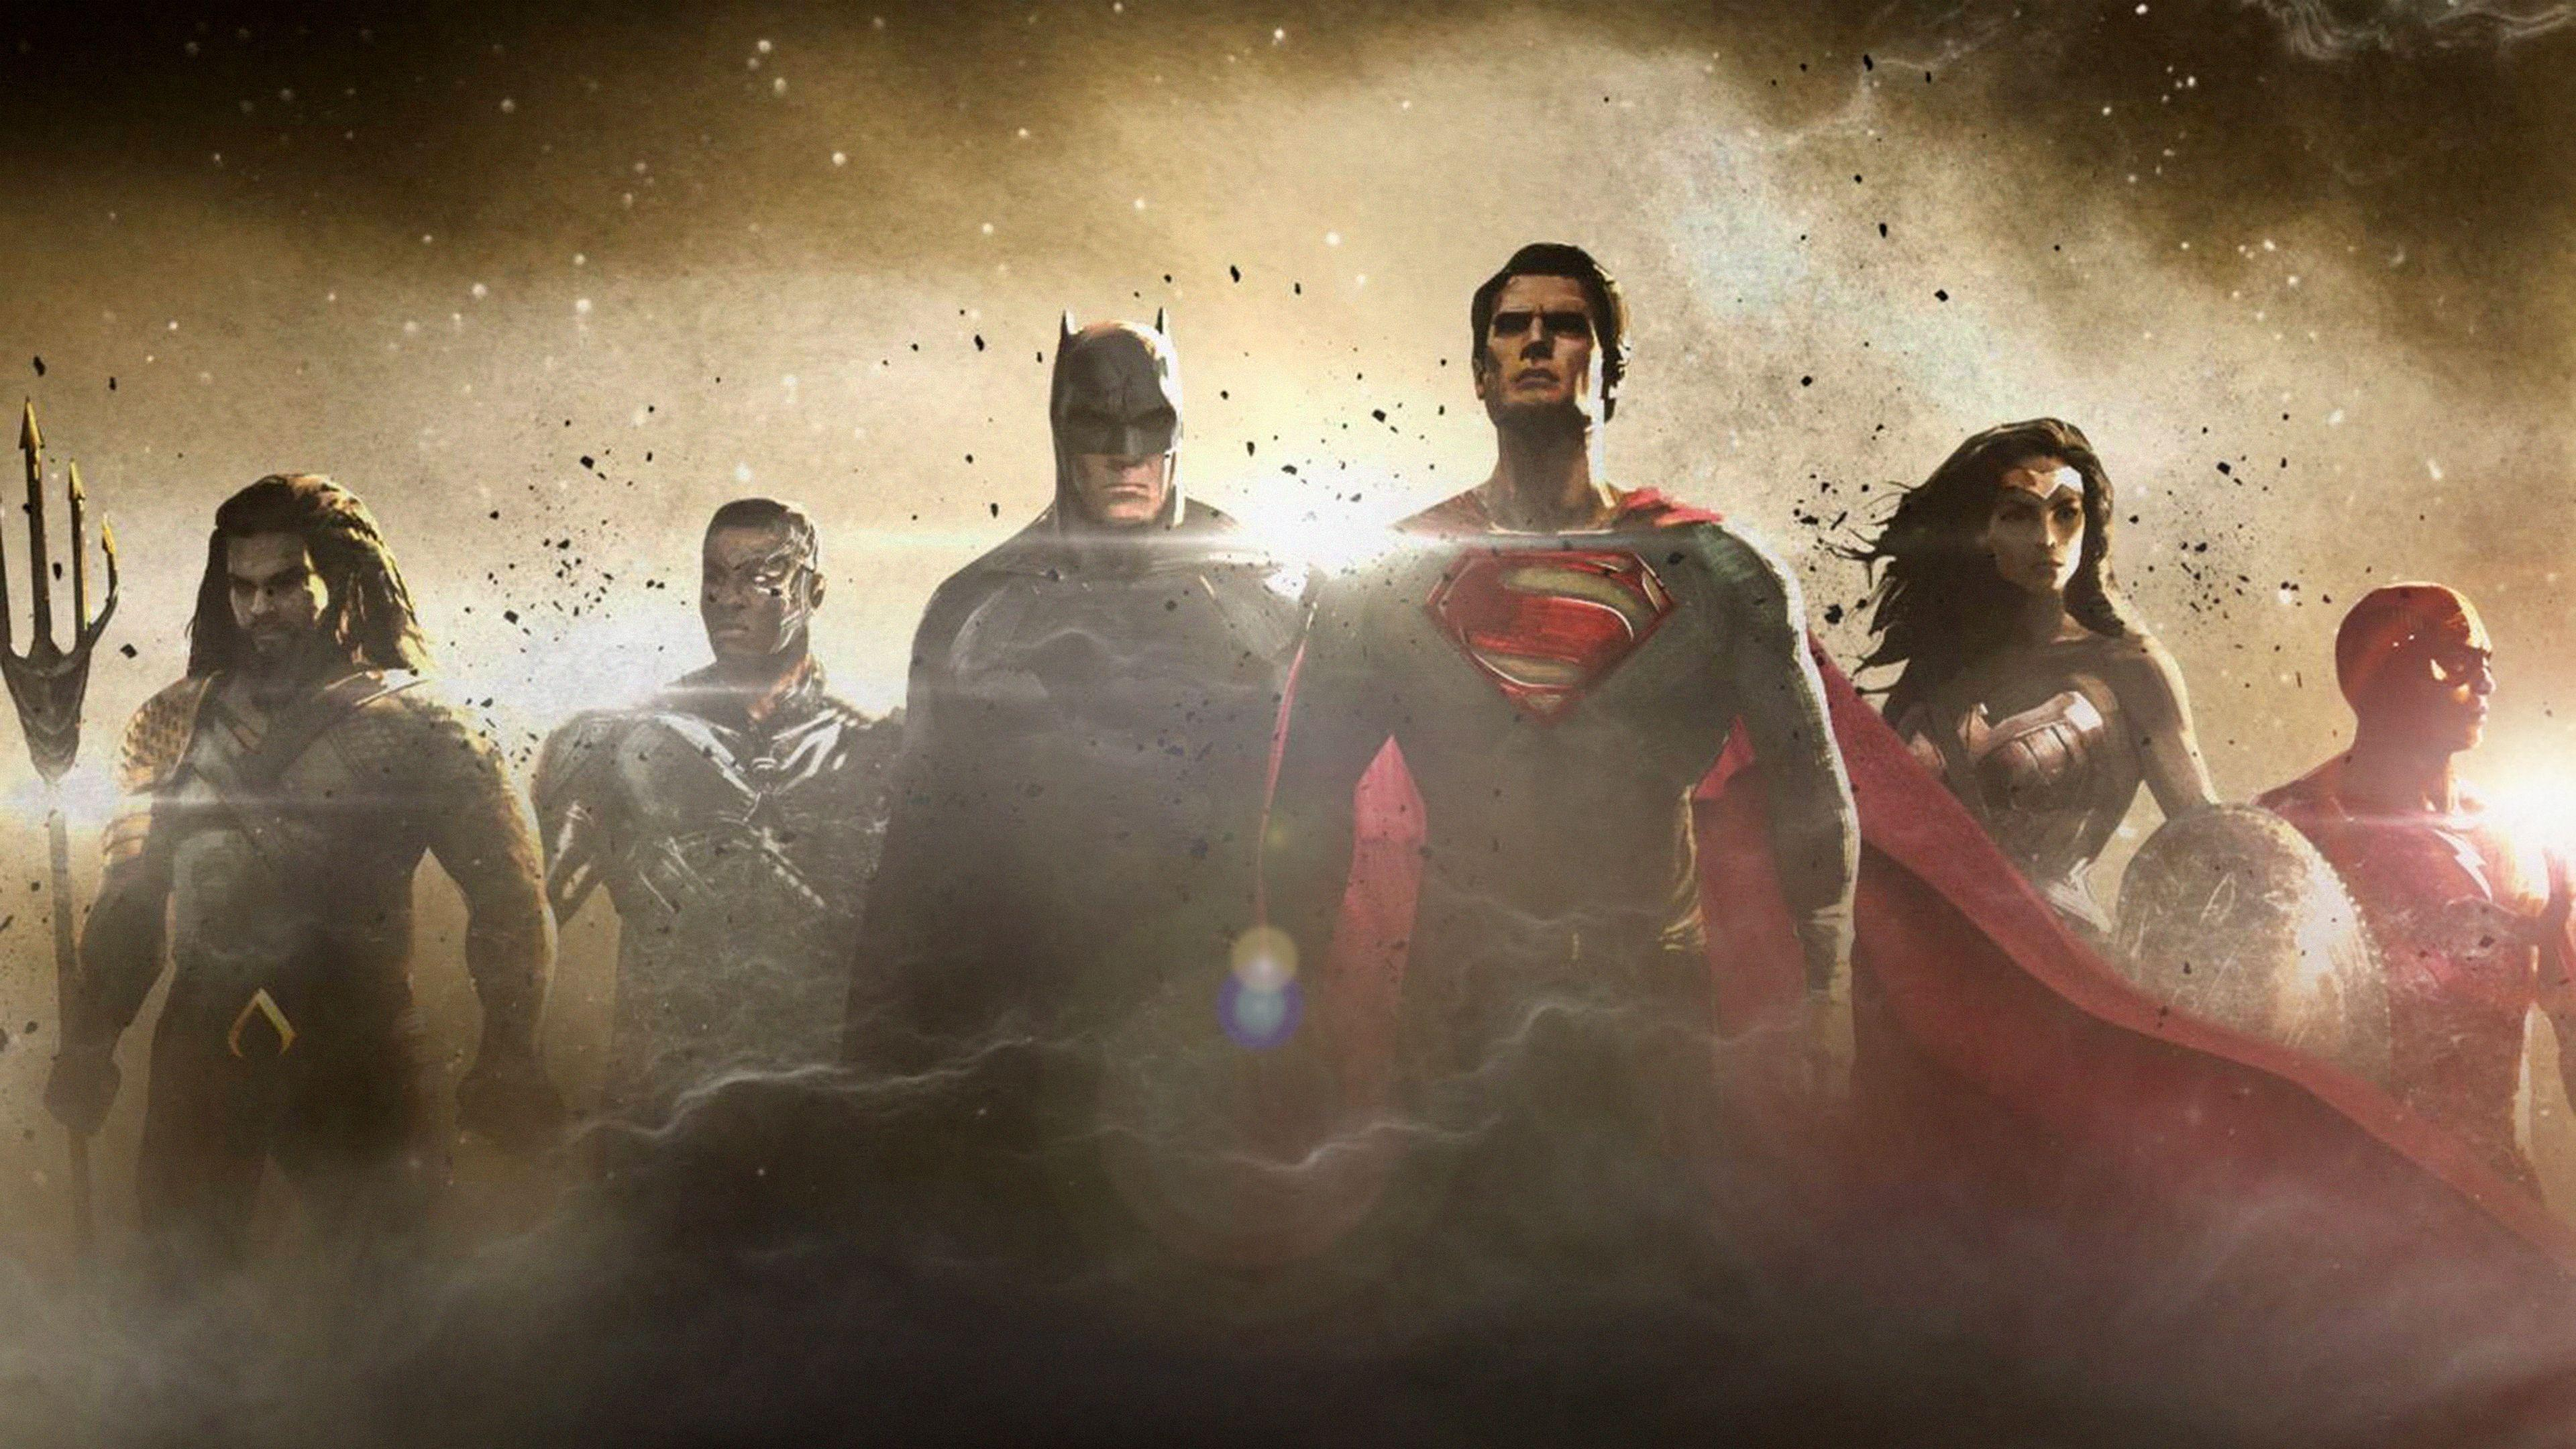 Justice League Wallpaper Hd Posted By Zoey Thompson